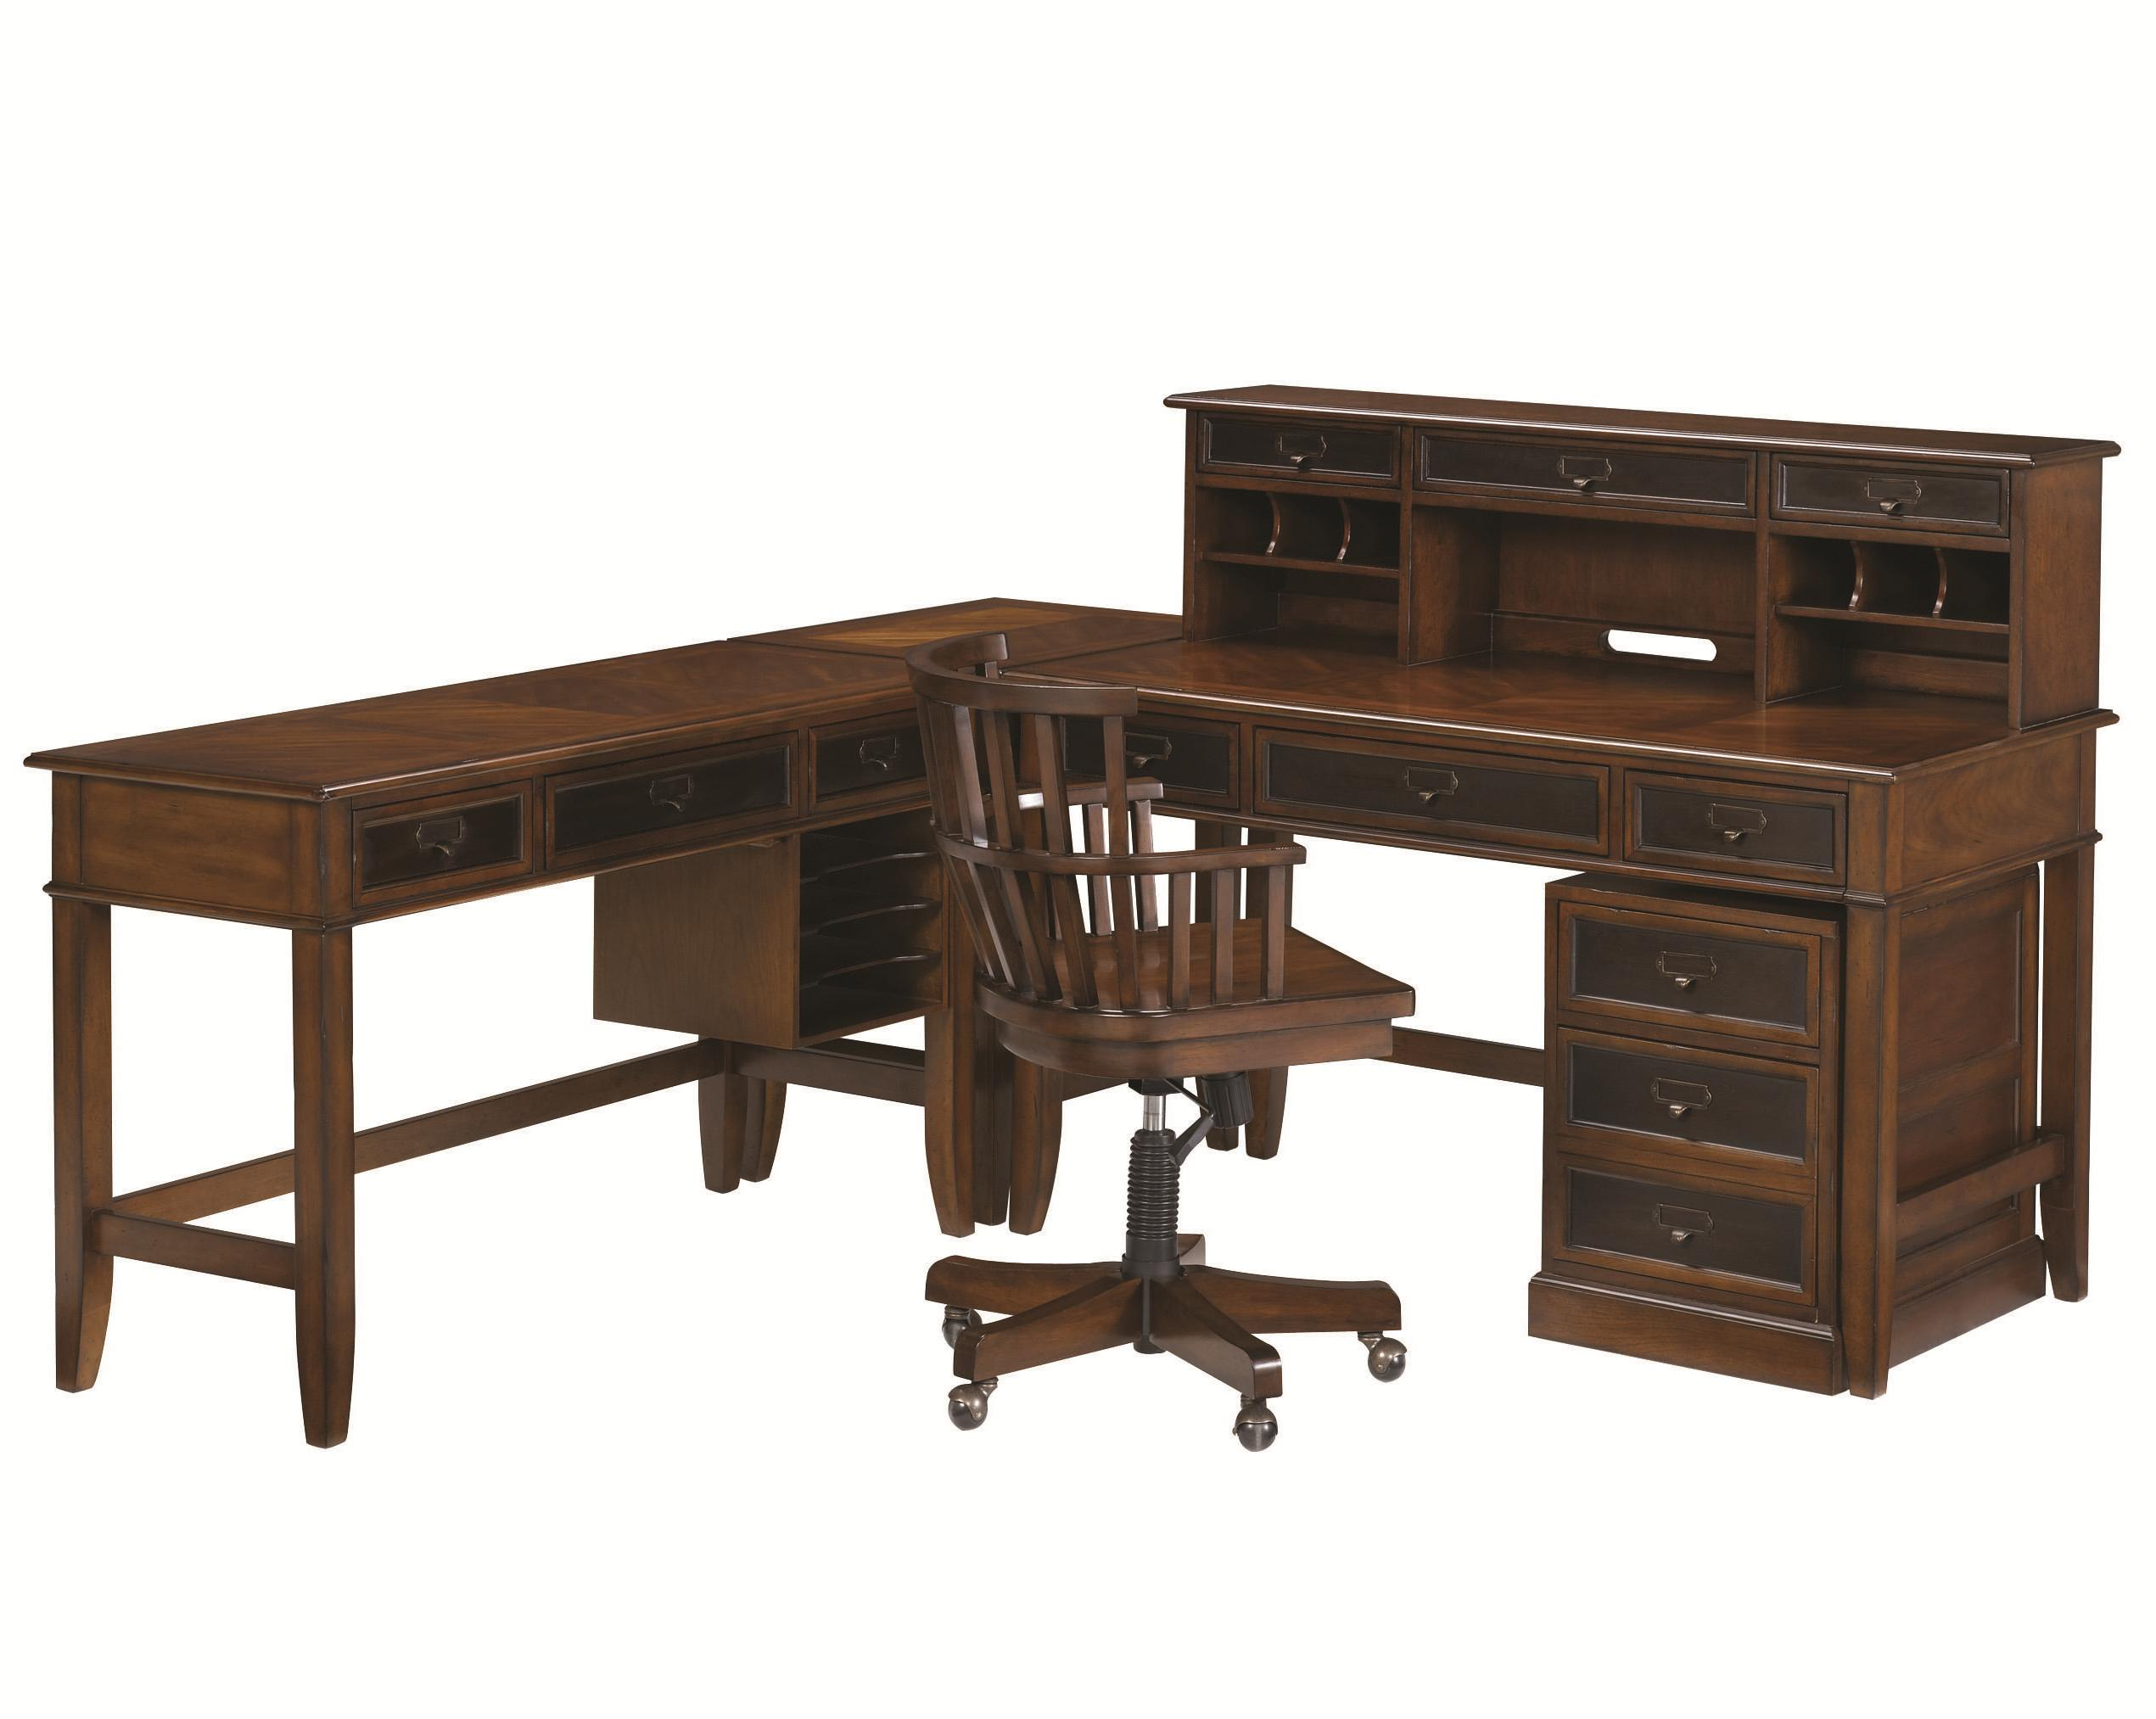 Mercantile L Shaped Desk and Credenza by Hammary